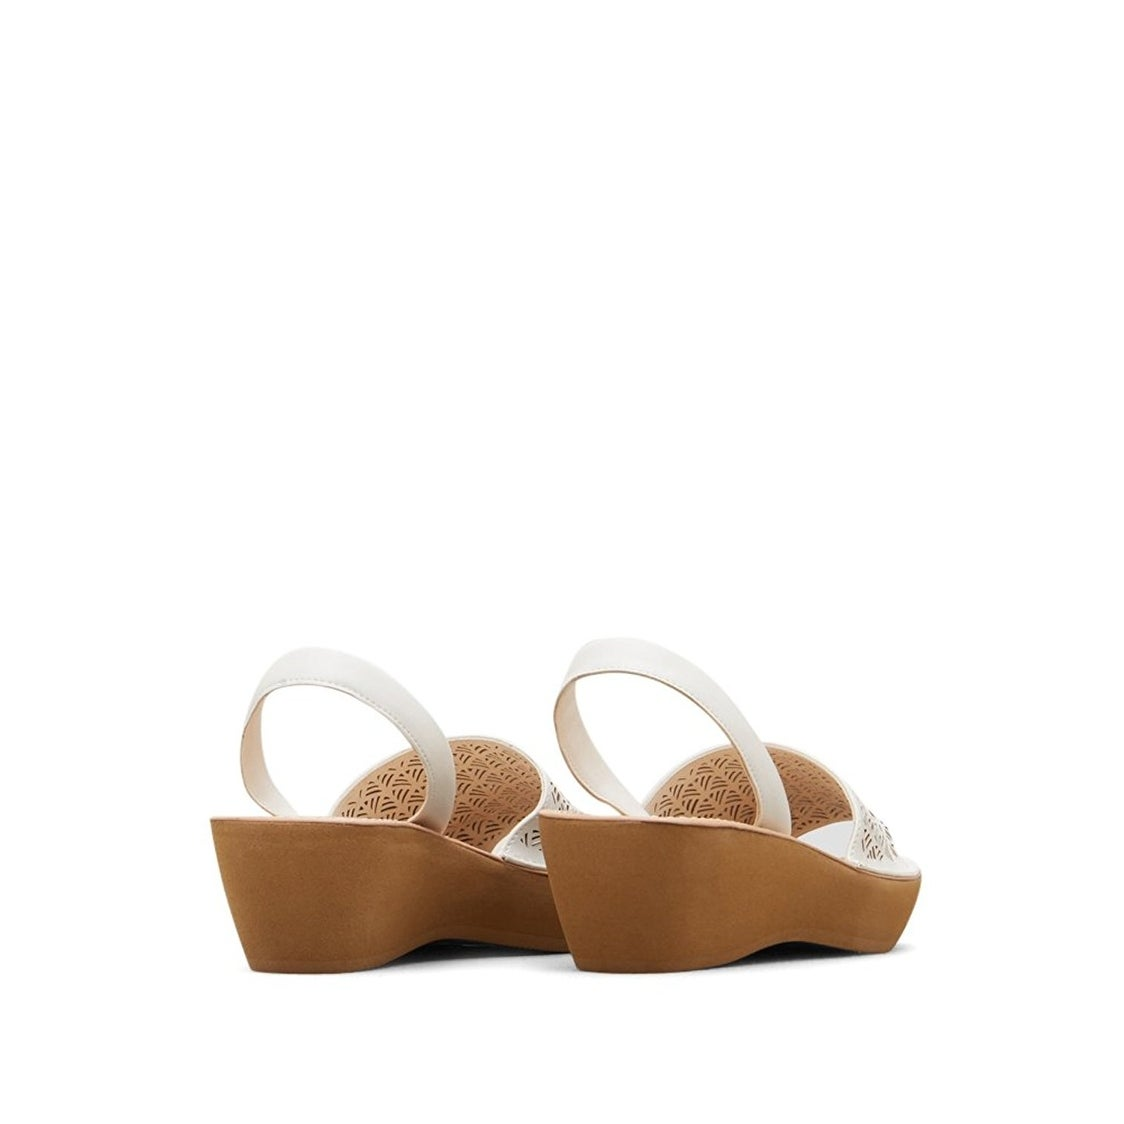 dd8eee71c9f Shop Kenneth Cole Reaction Women s Faux-Leather Fine Glass Laser Cut Platform  Sandal - Free Shipping On Orders Over  45 - Overstock.com - 17734625